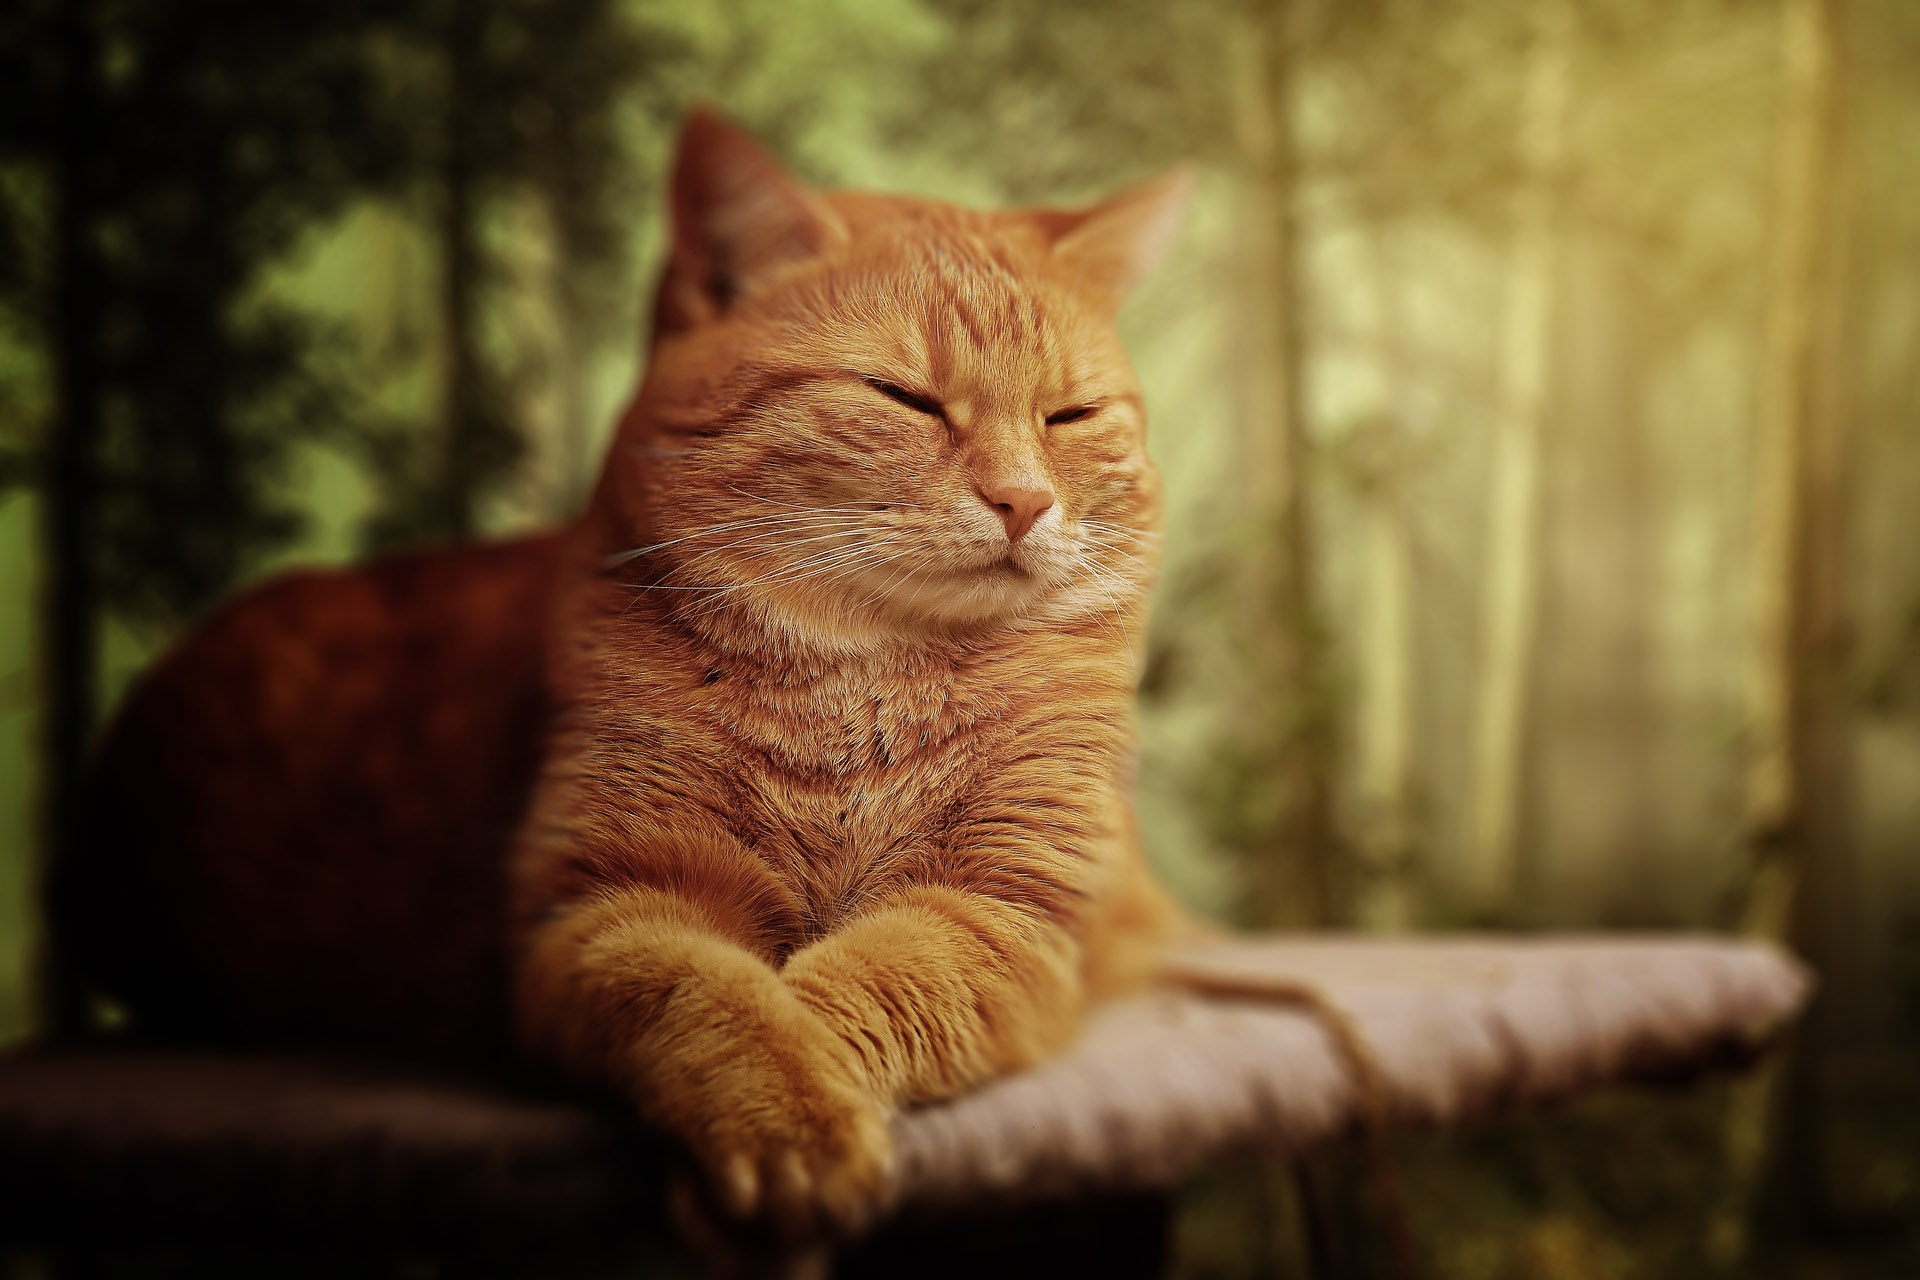 Cute Cat Face Wallpaper Orange Tabby Cat Laying On Brown Sofa 183 Free Stock Photo